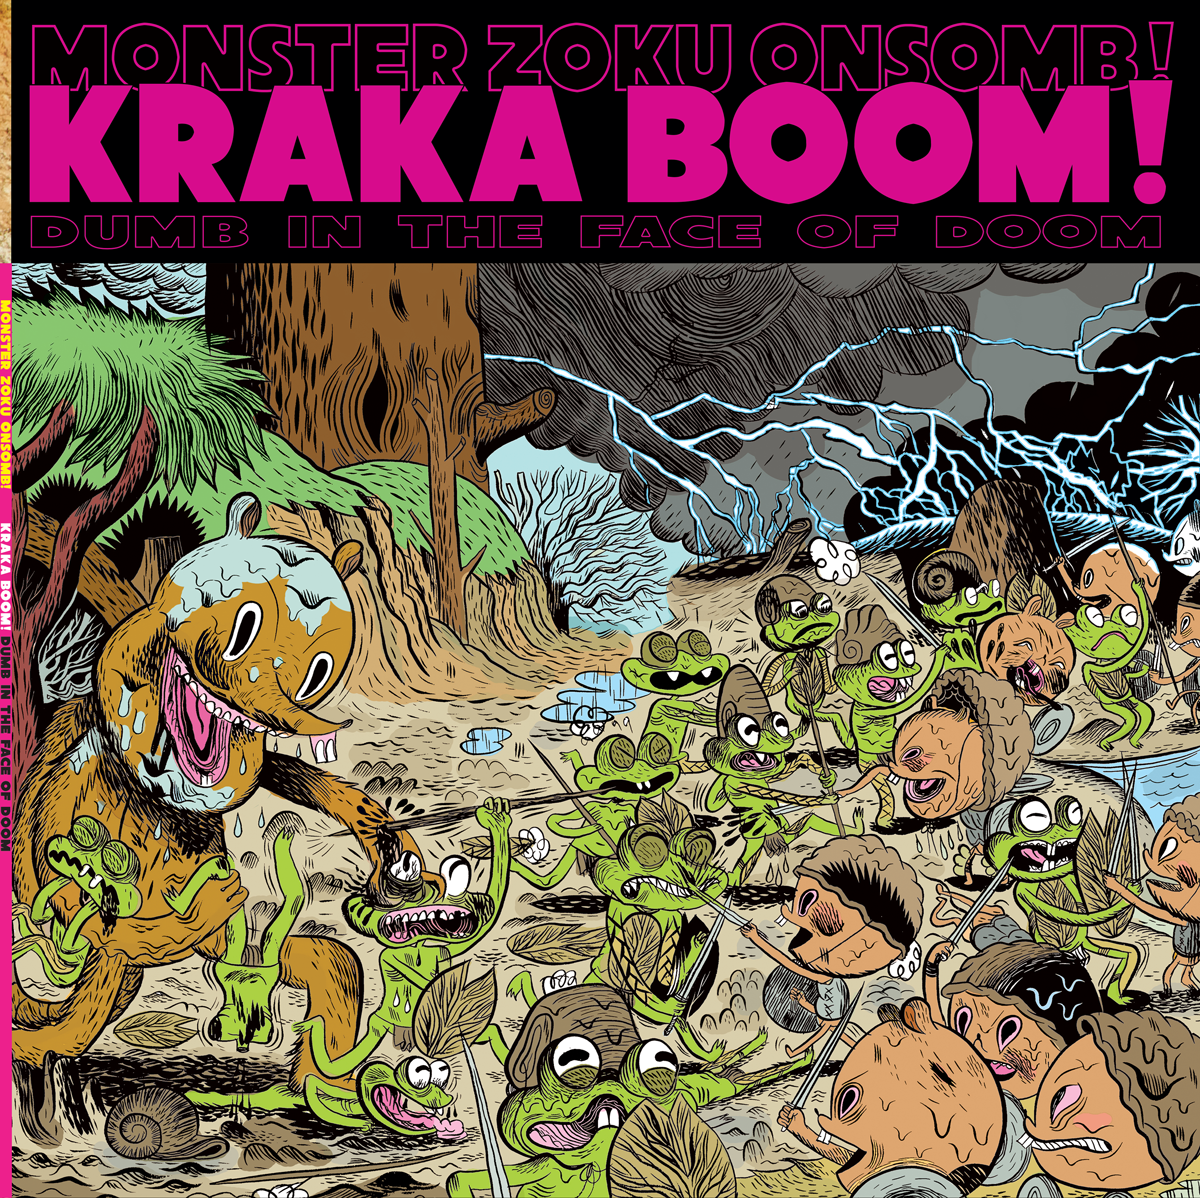 Monster Zoku Onsomb! (MZO!) - KRAKA BOOM! .. Dumb In The Face Of Doom. - cover